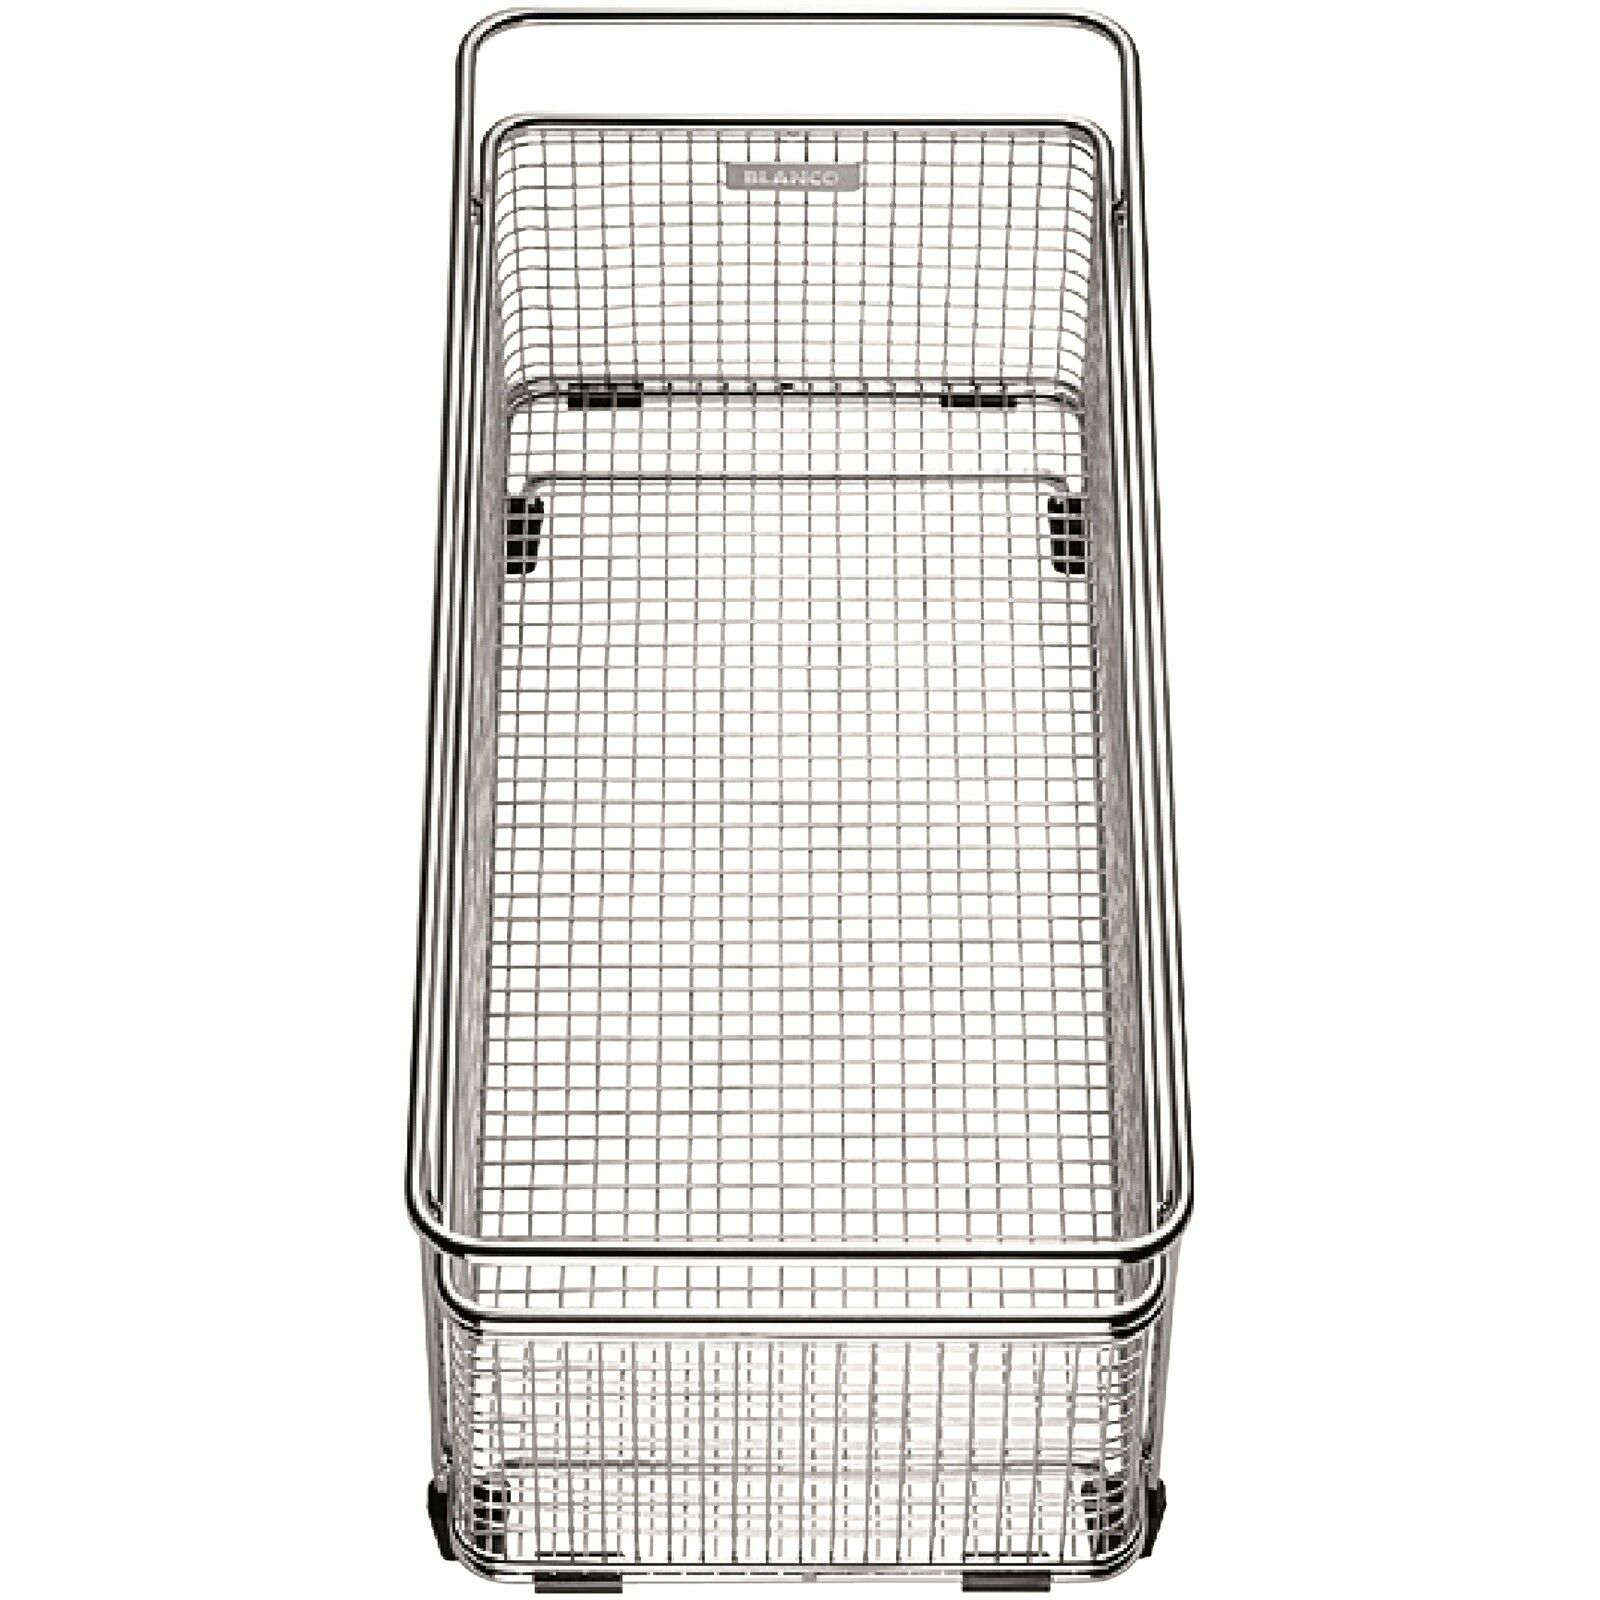 blanc MULTIFUNCTIONAL ACCESSORY BASKET 360x160x130mm Solid Stainless Steel